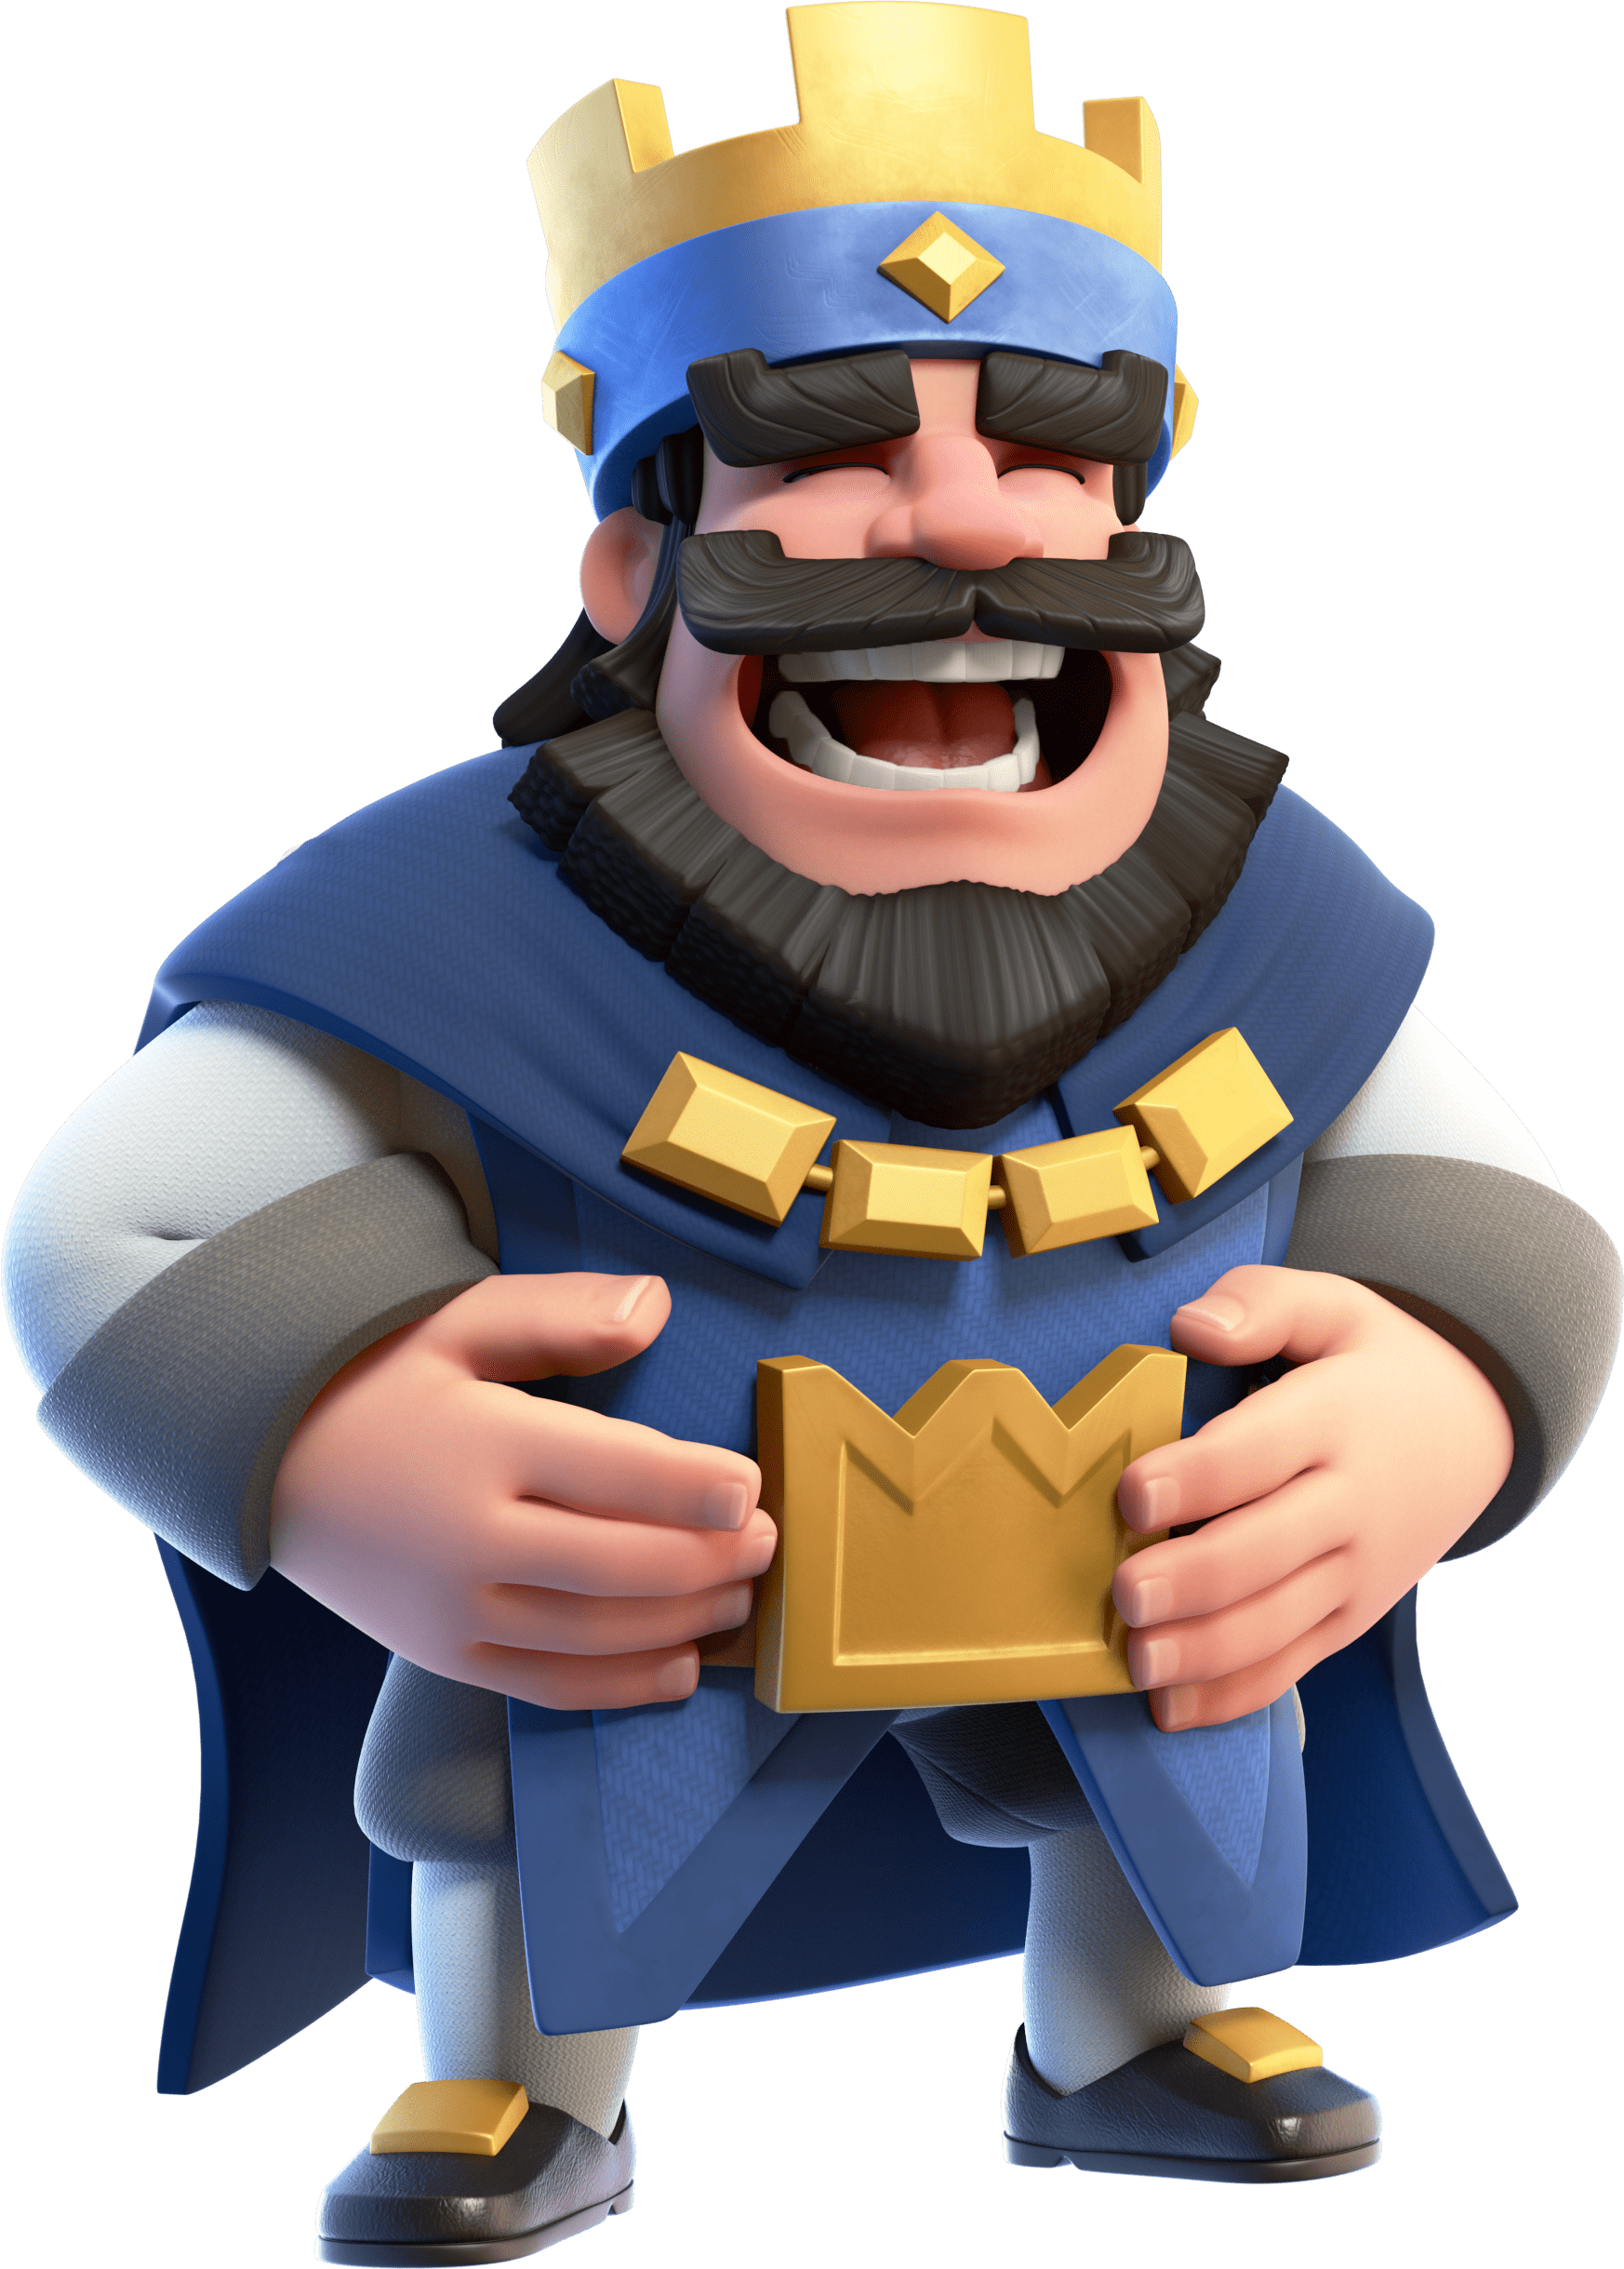 Clash royale laughing king transparent png stickpng for Miroir noir download